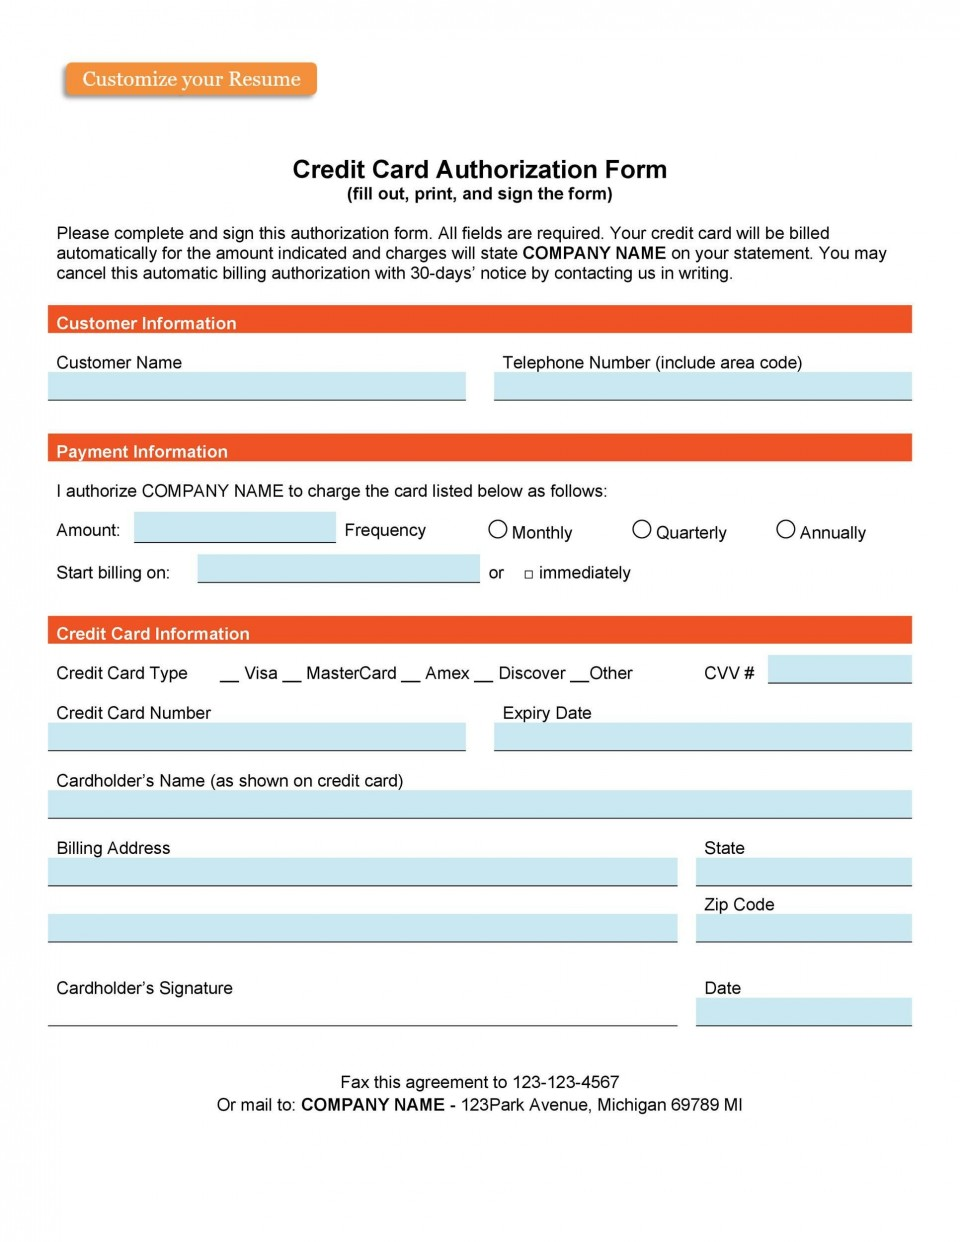 003 Incredible Credit Card Form Template Html Concept  Example Payment Cs960